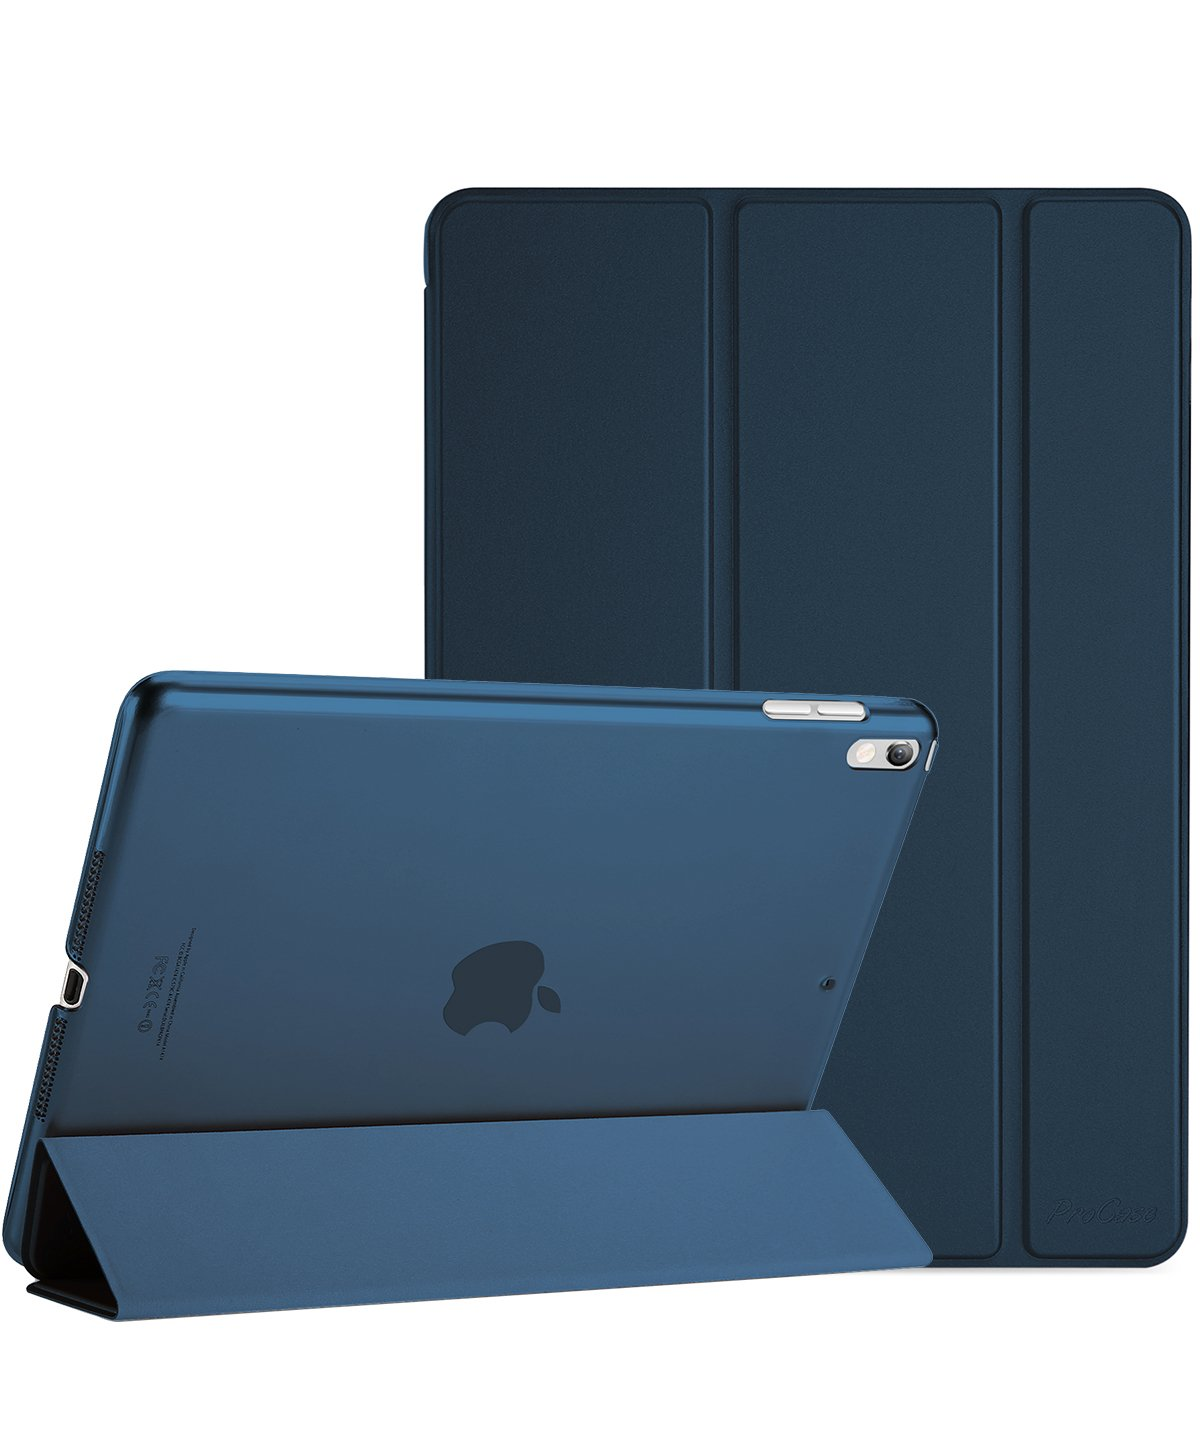 ProCase iPad Pro 10.5 Case 2017, Ultra Slim Lightweight Stand Smart Case Shell with Translucent Frosted Back Cover for Apple iPad Pro 10.5-Inch –Navy Blue